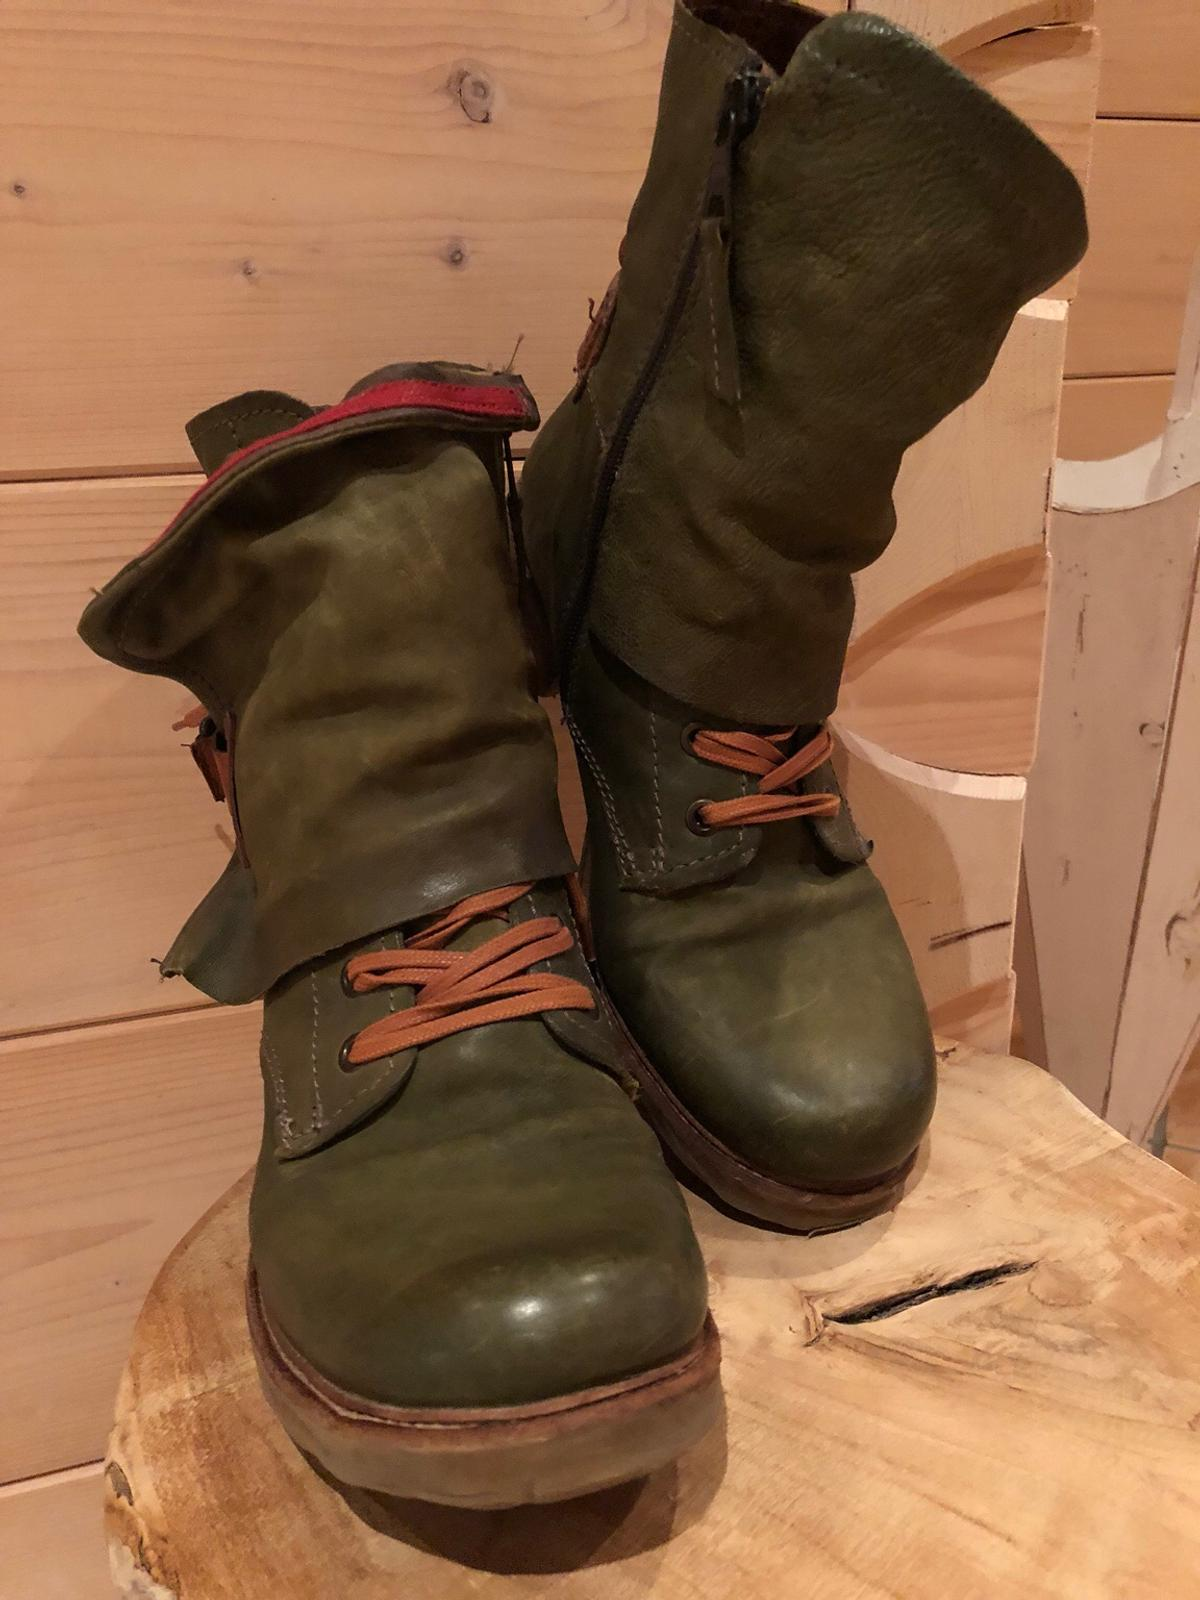 A.S.98 AIRSTEP STIEFELETTE BOOTS KHAKI GR 38 in 83607